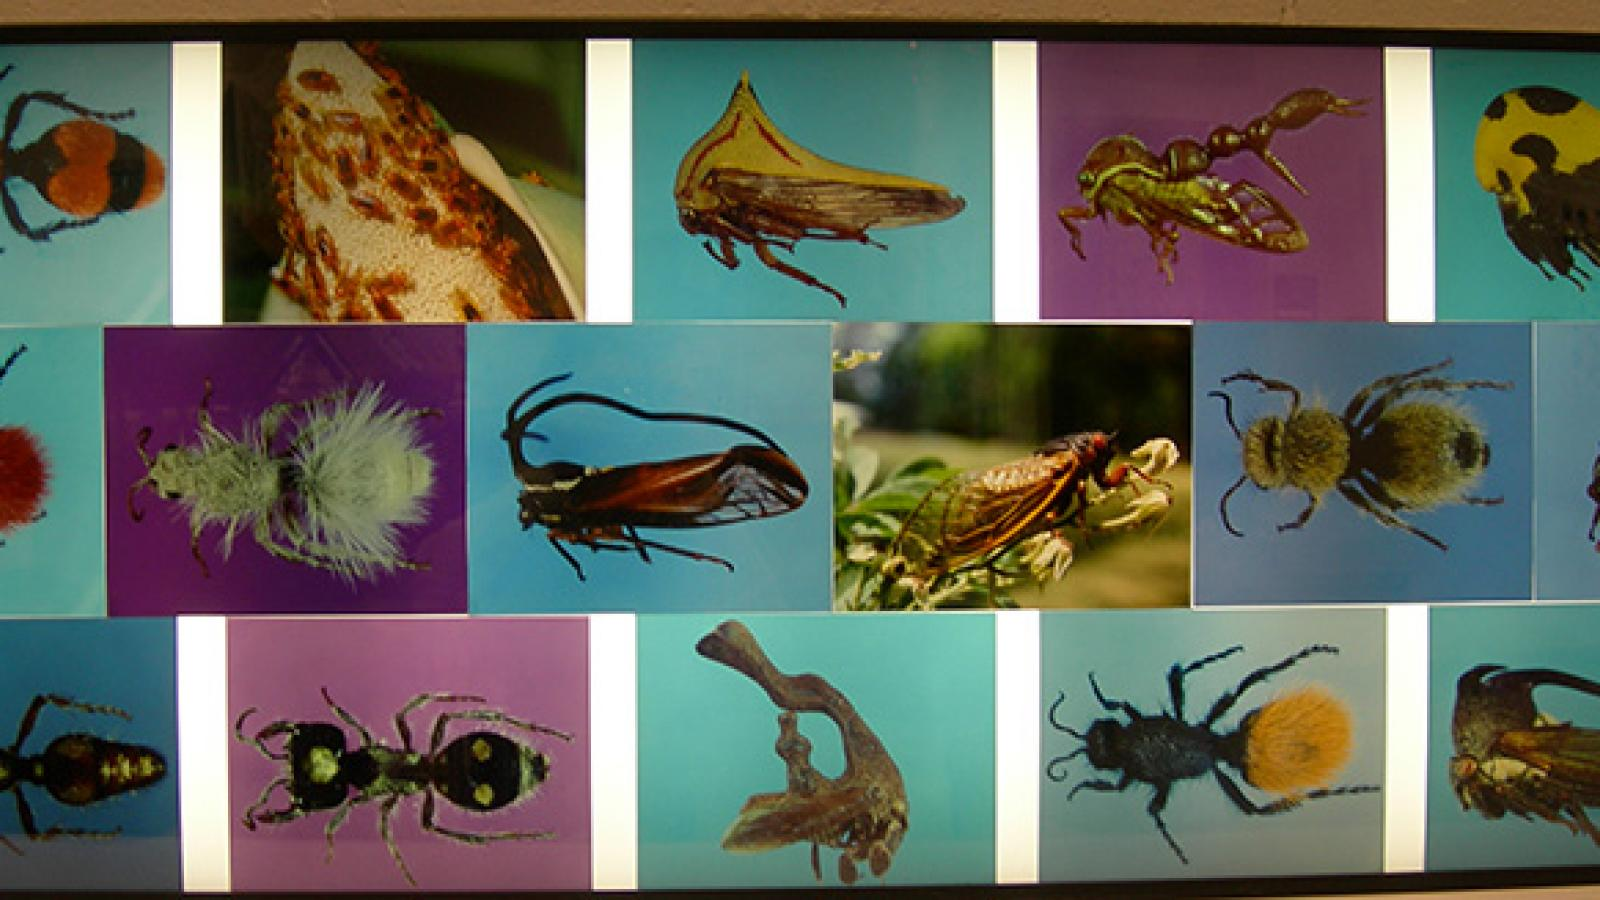 Insect photo display at 2007 Open House